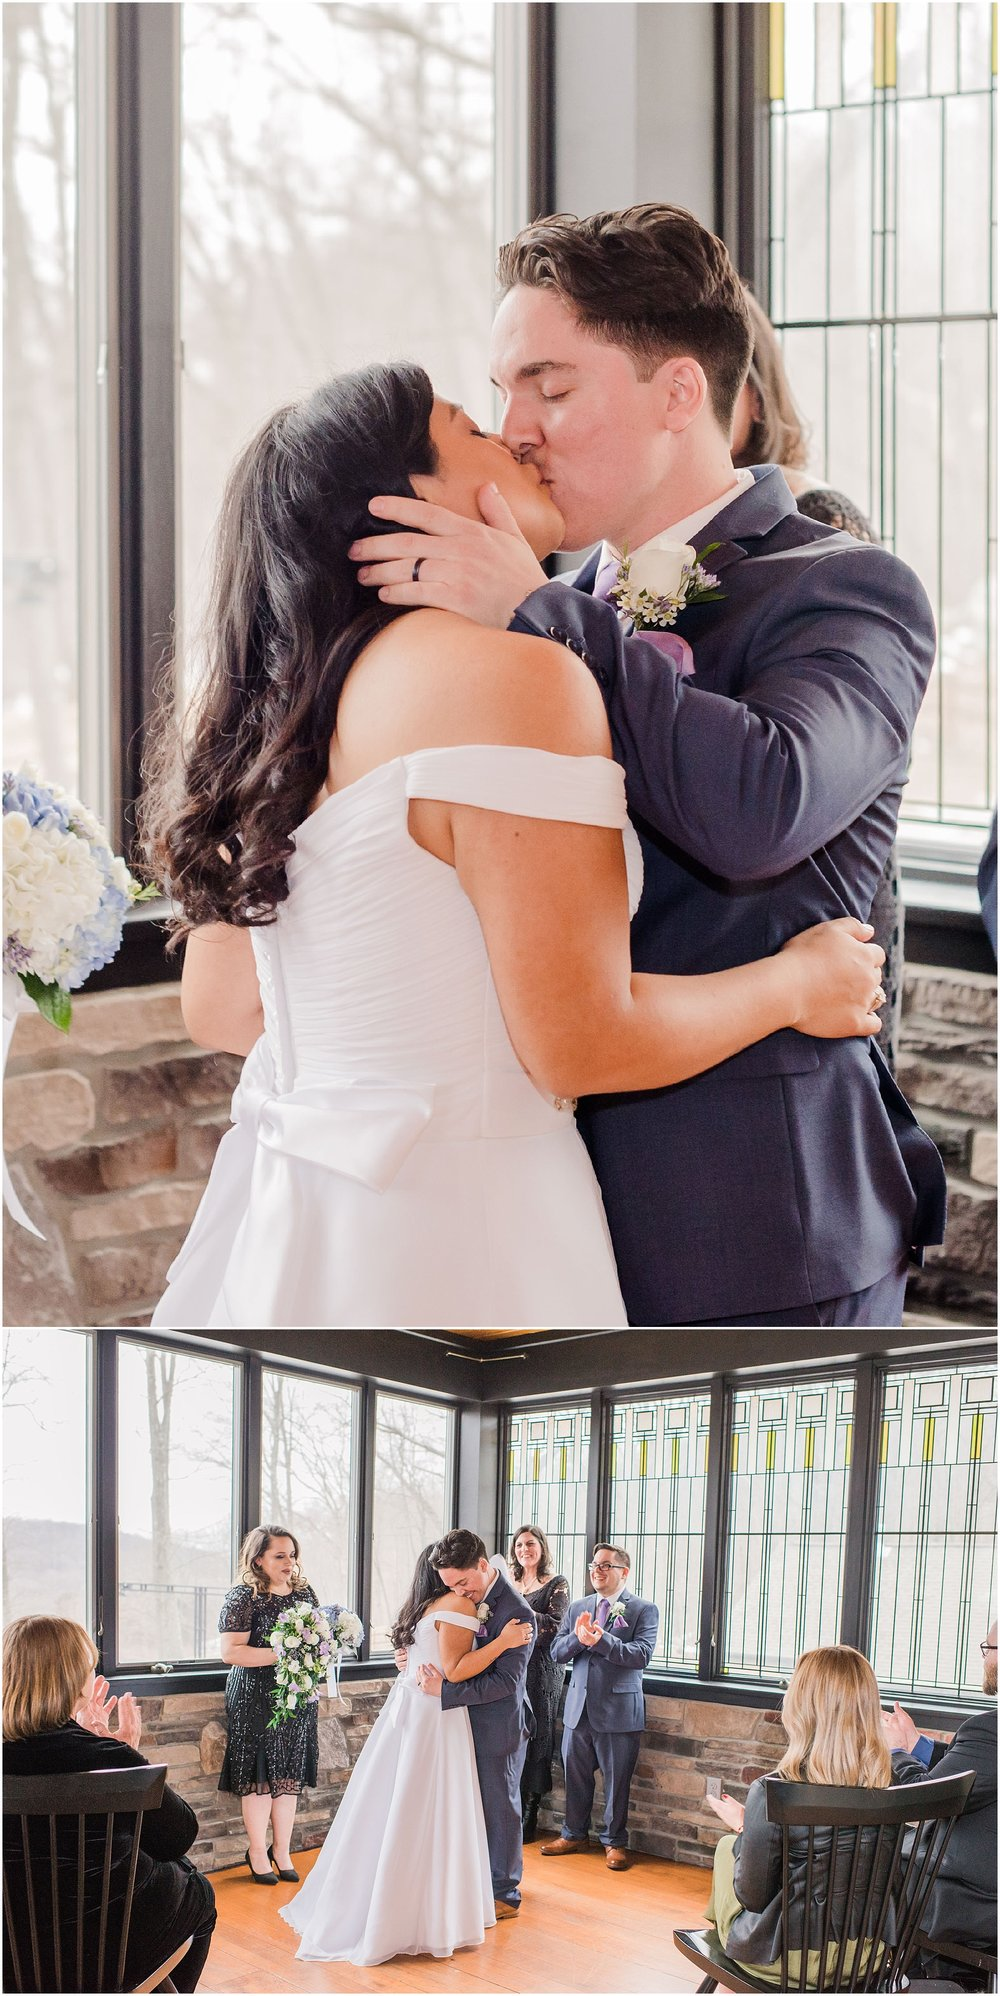 bride and groom kiss for the first time as husband and wife as their guests clap for their intimate wedding ceremony, NJ elopement